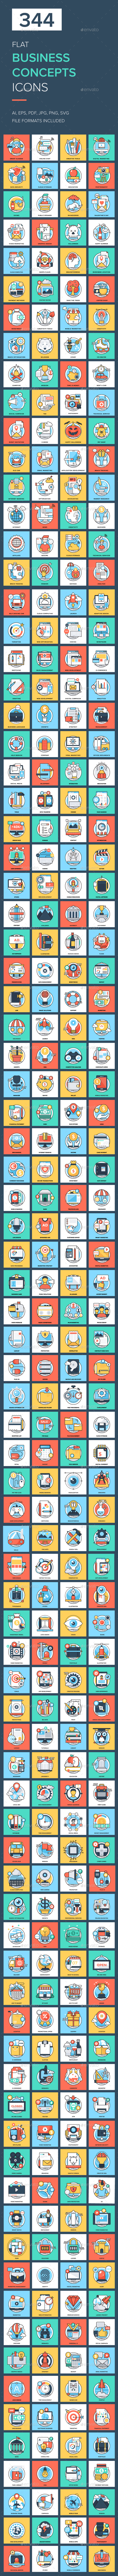 GraphicRiver 344 Flat Business Concepts Icons 20921120